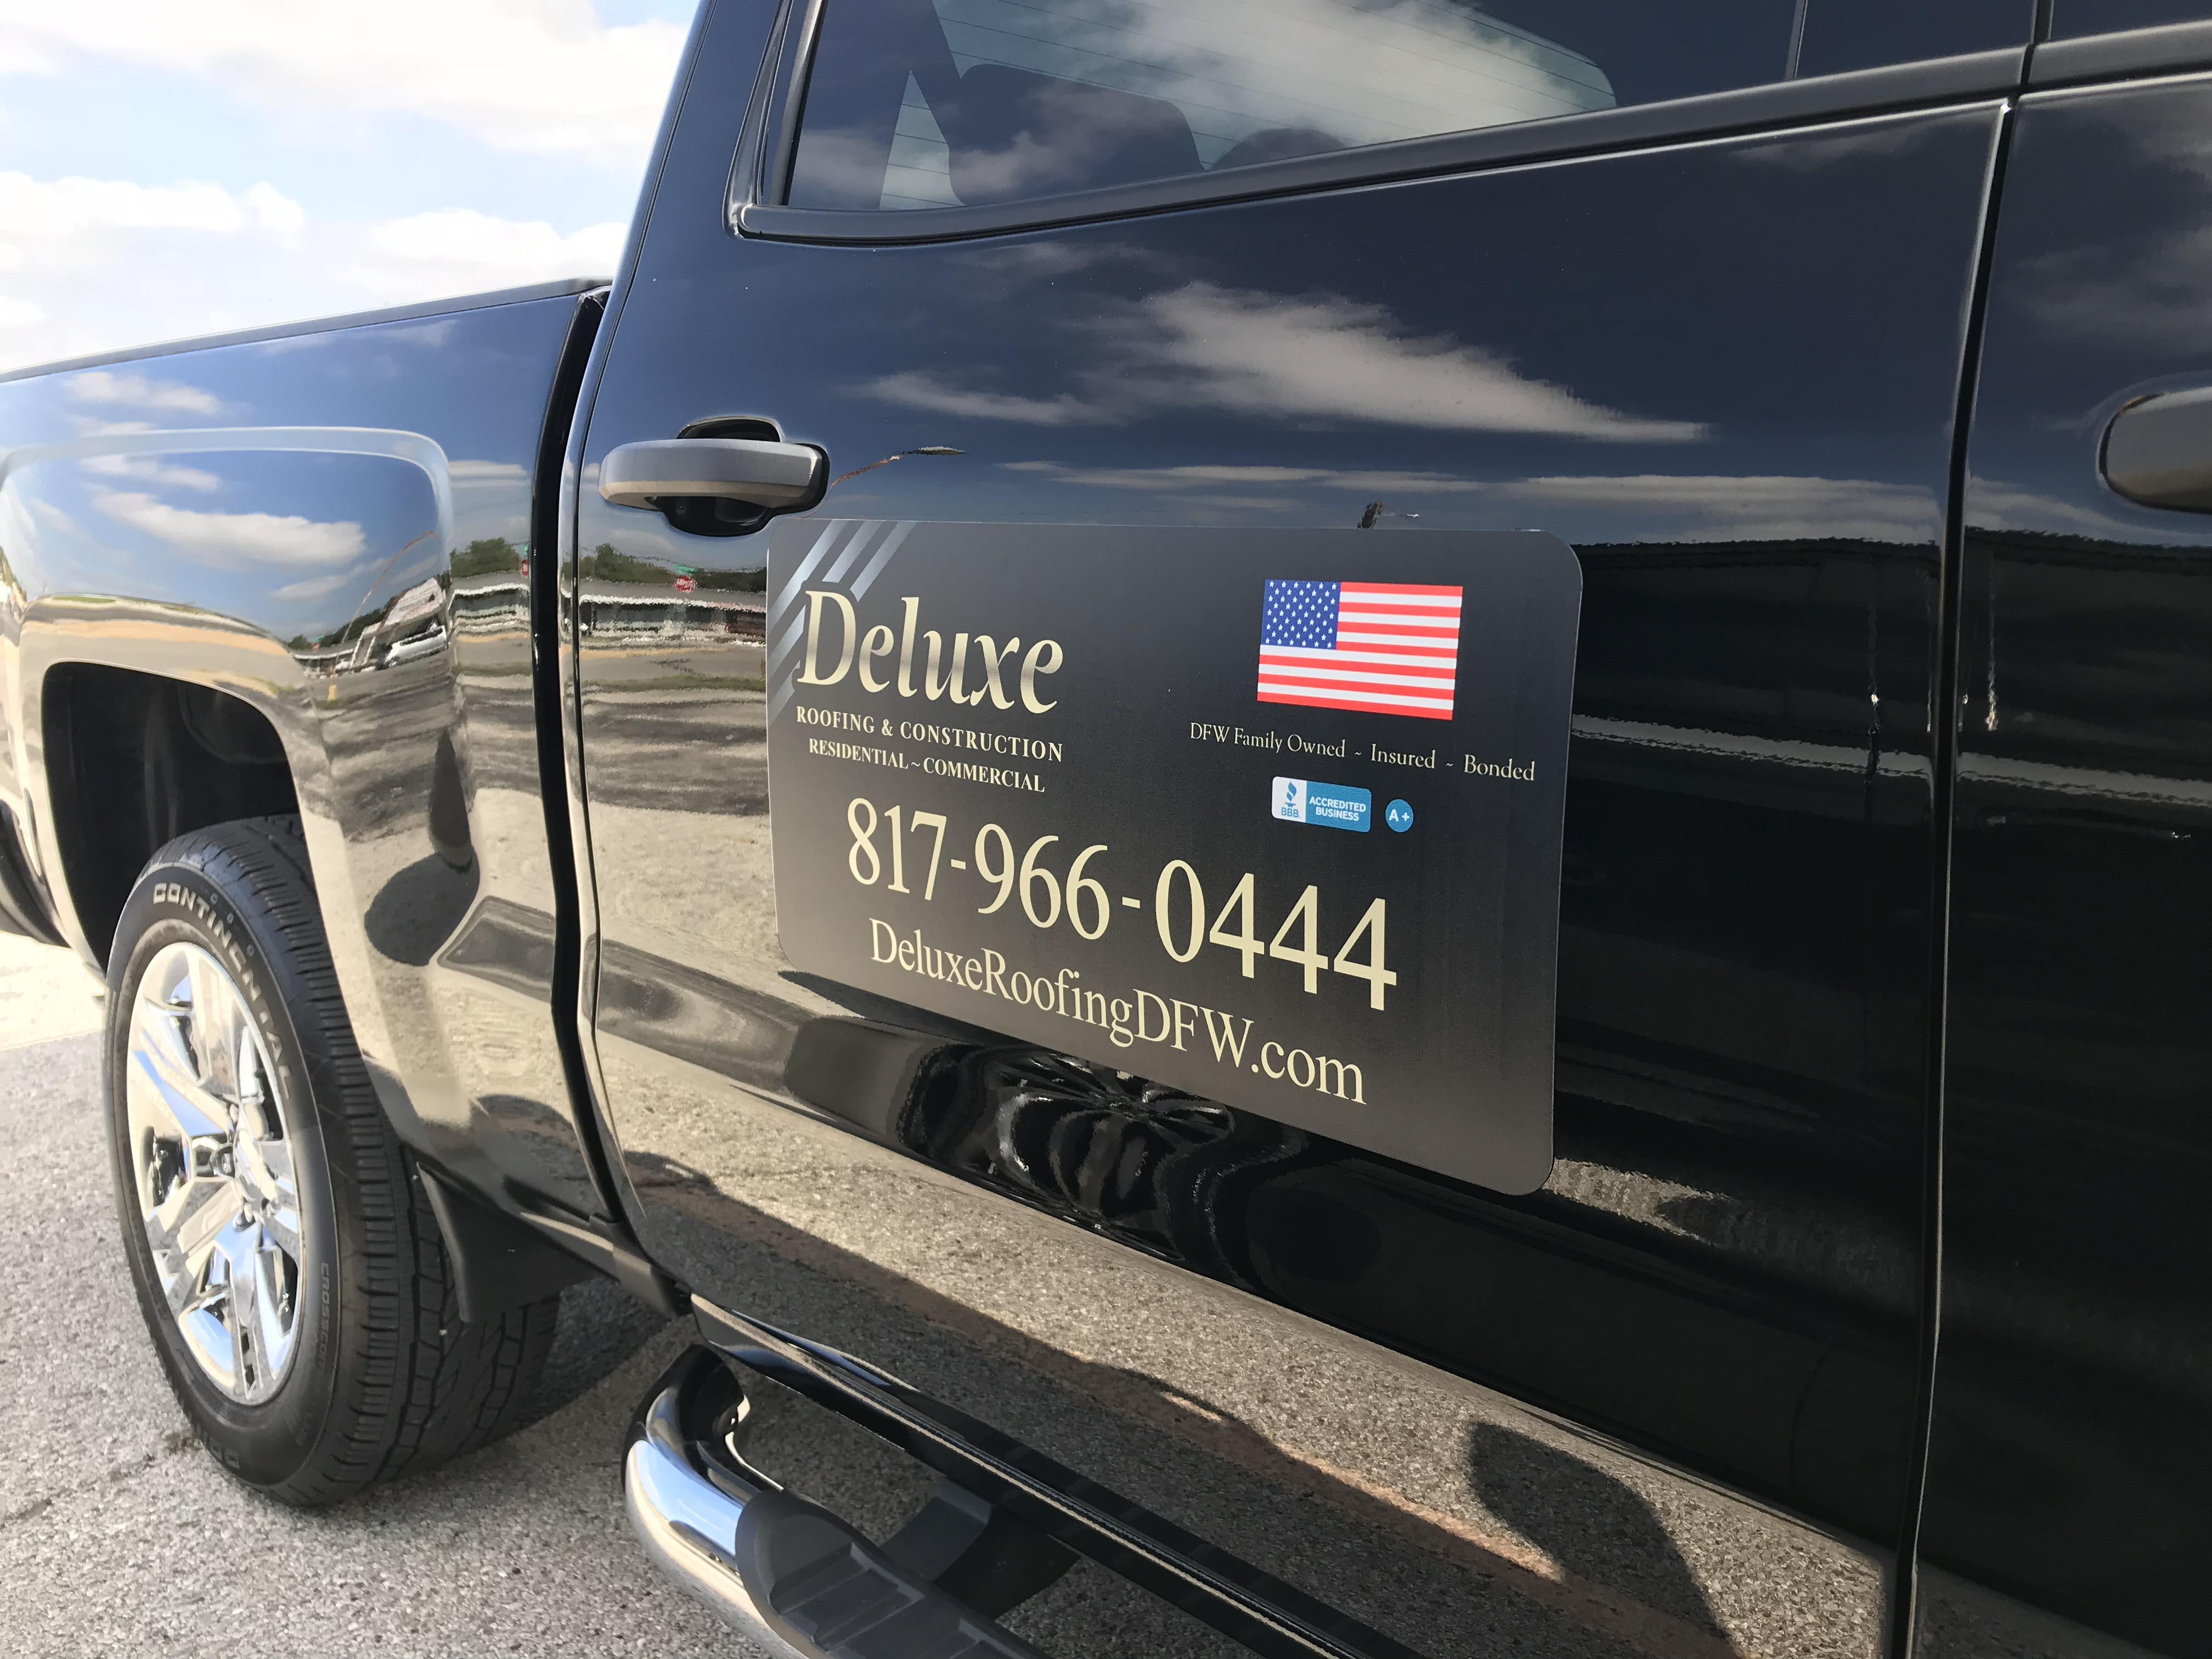 car magnet truck magnet deluxe roofing